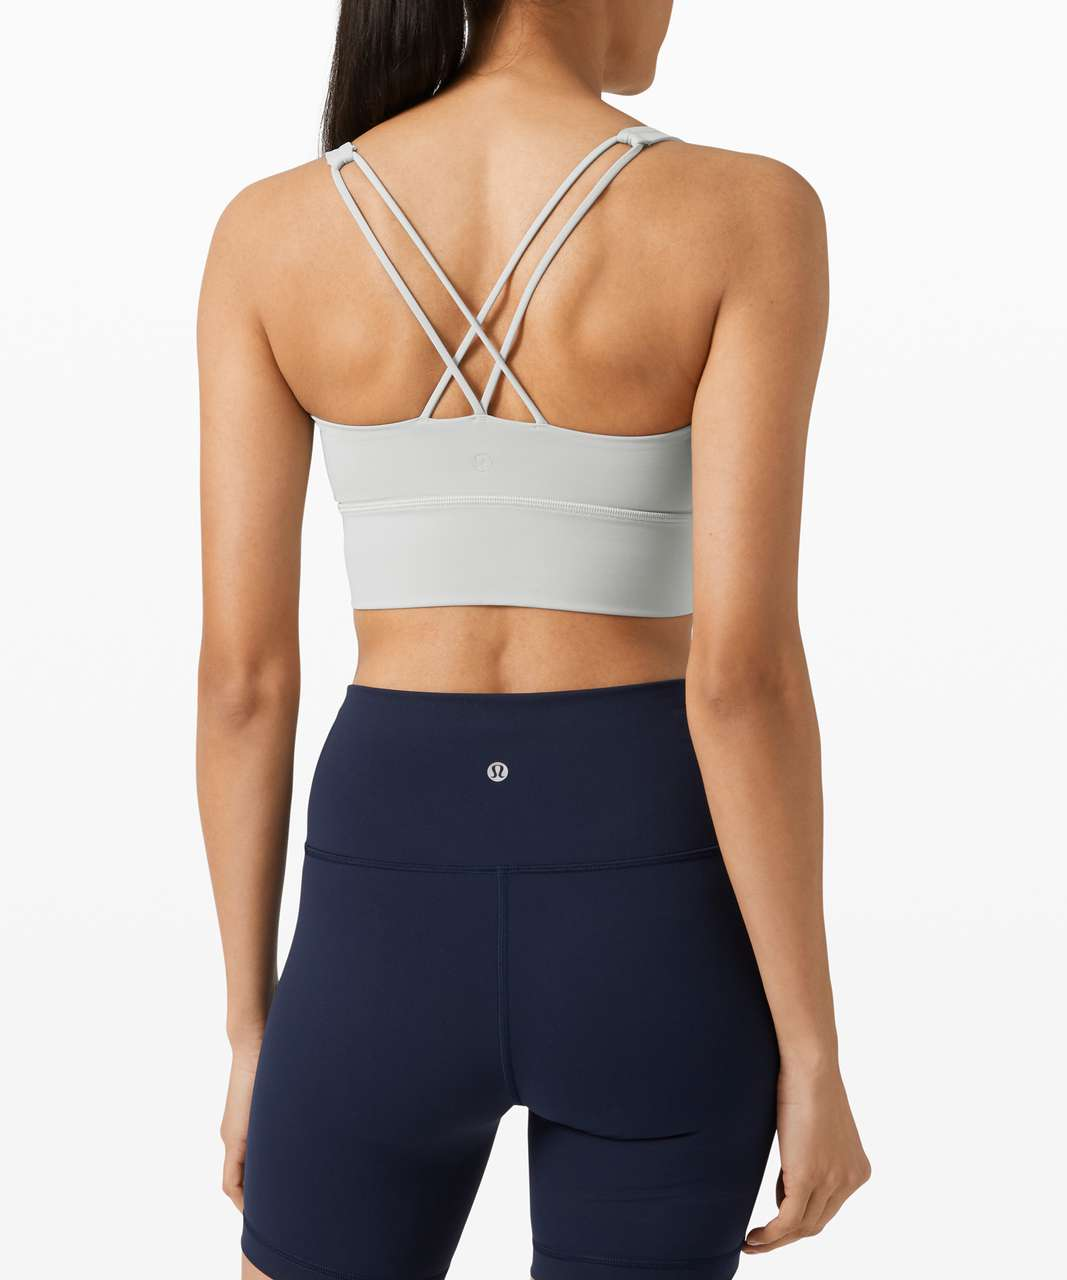 Lululemon Free To Be Bra Long Line *Light Support, A/B Cup (Online Only) - Silver Drop